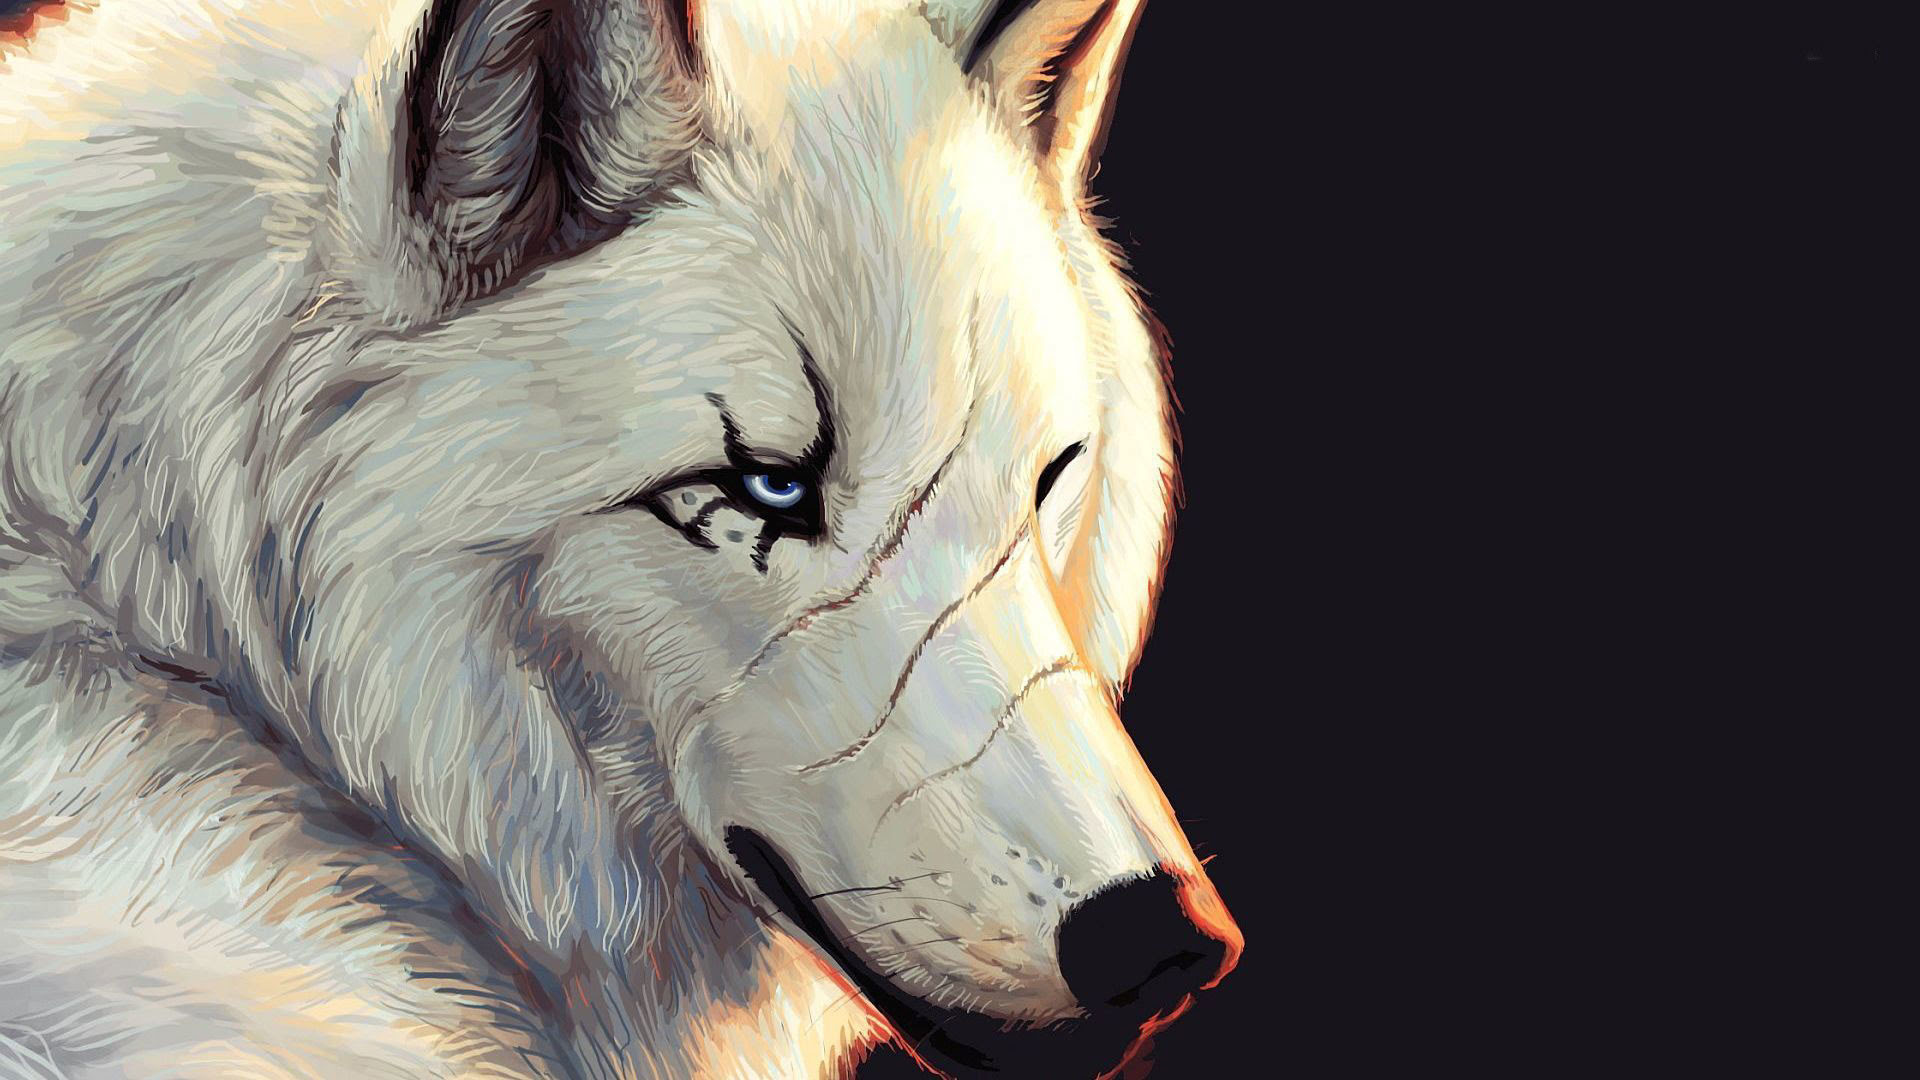 Awesome Iphone Lone Wolf Hd Wallpaper Images